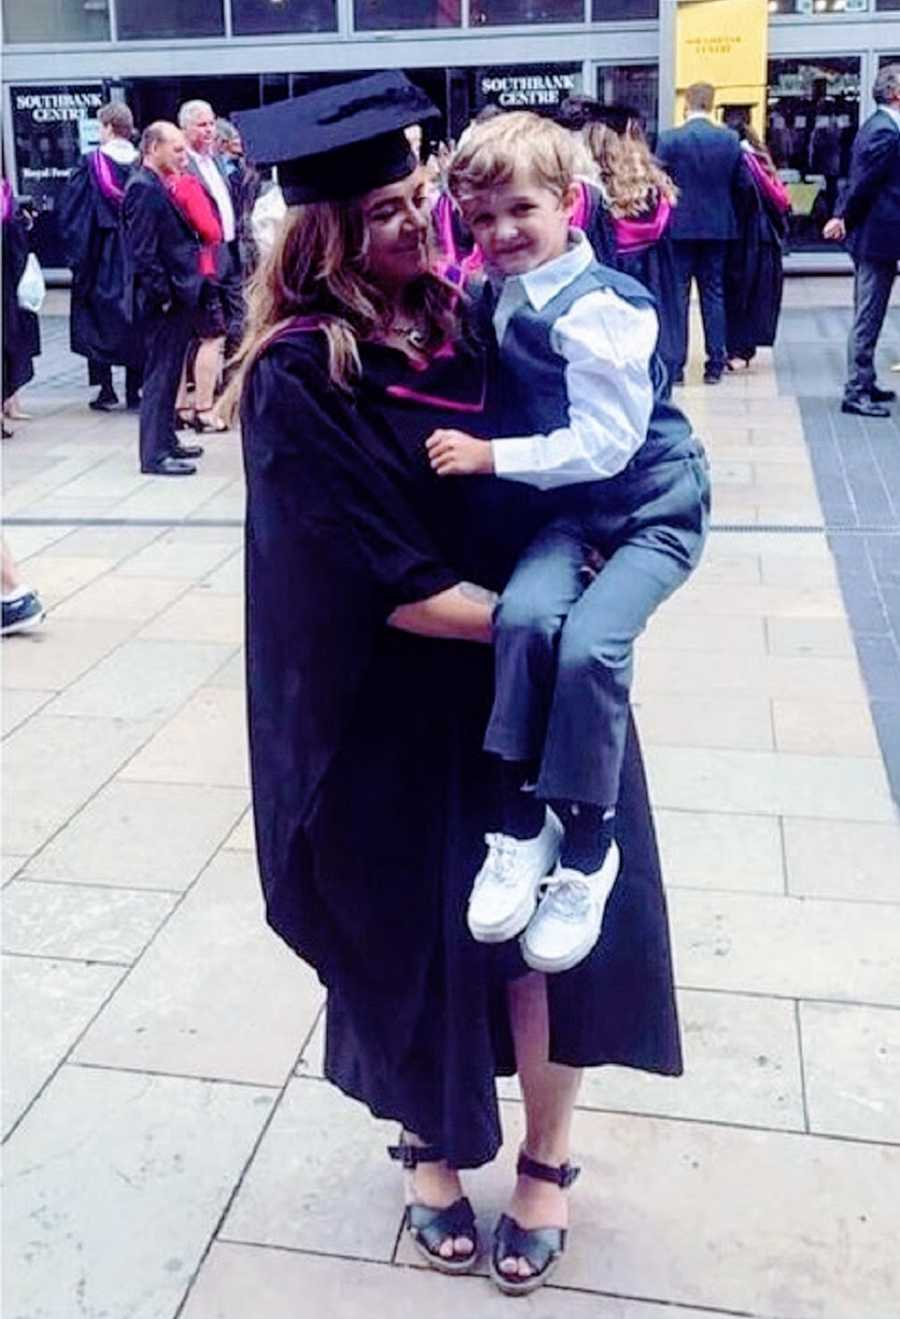 A woman with chronic illness holds her son at a graduation